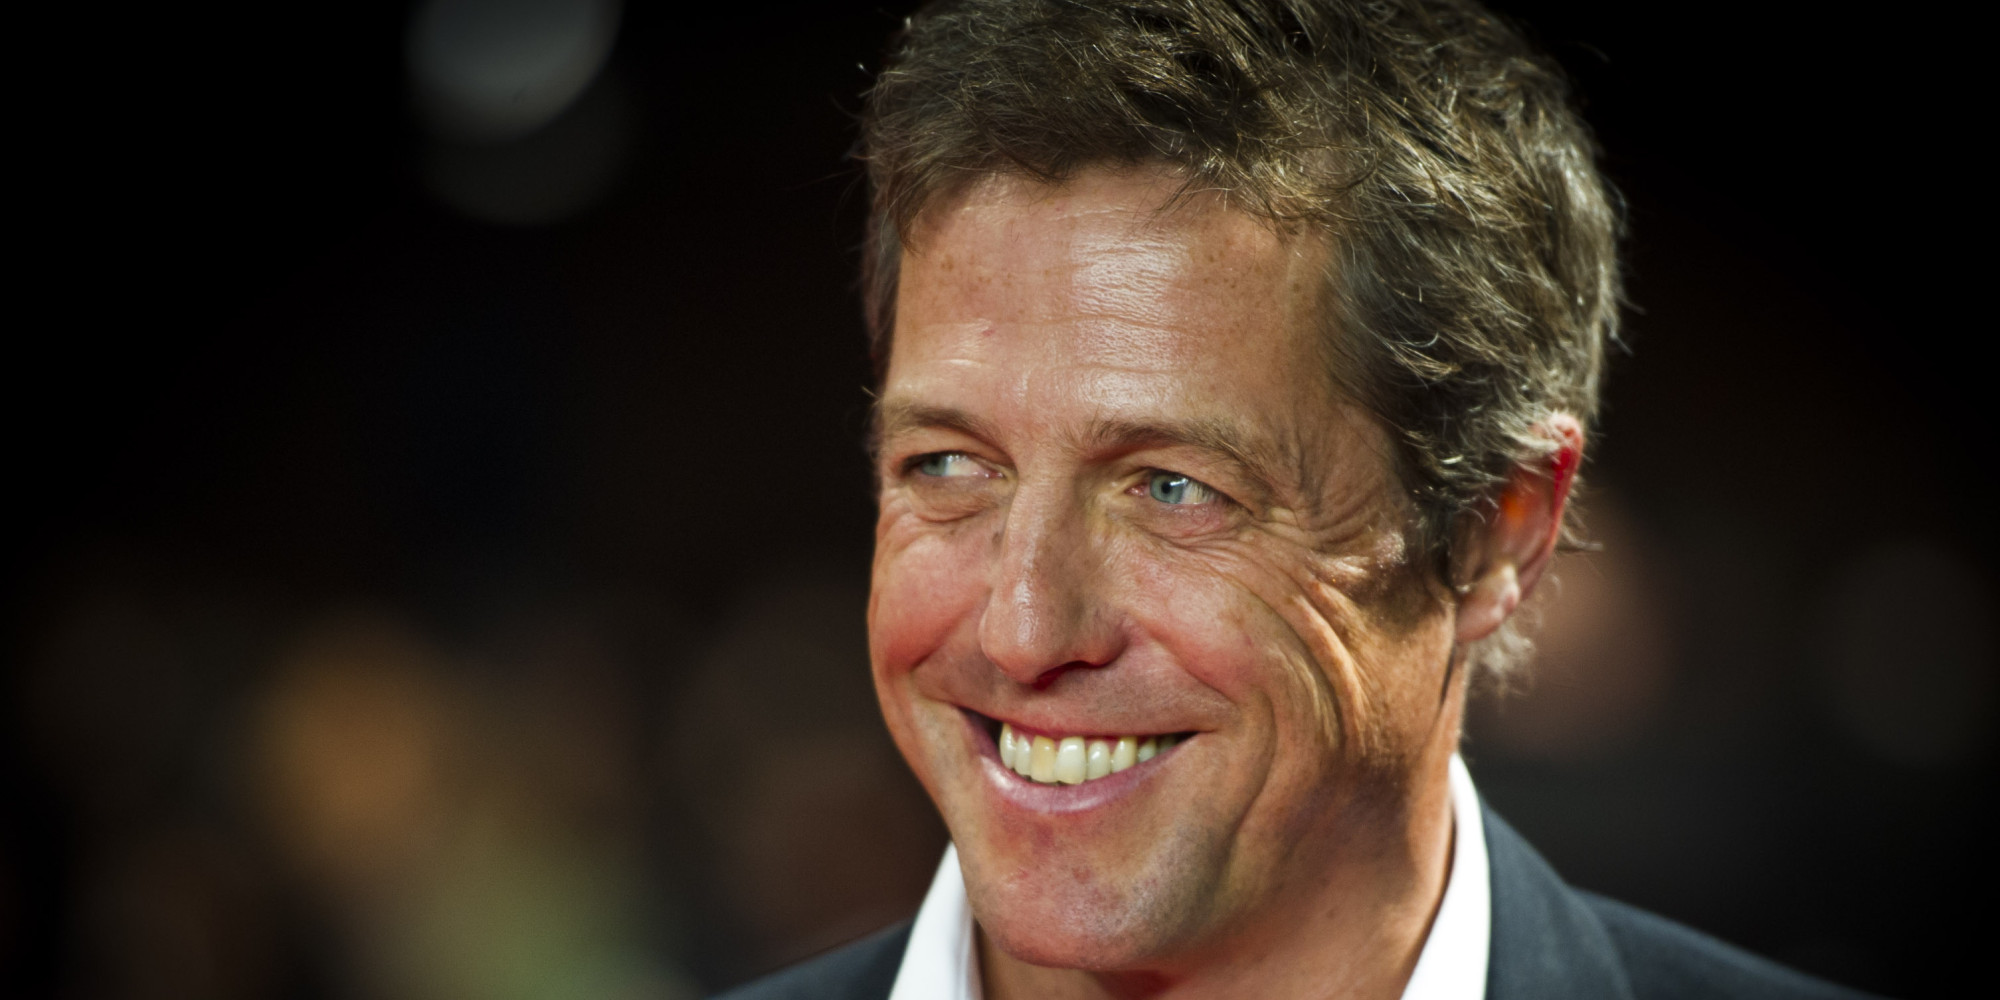 Hugh Grant: Hugh Grant Reveals He Got Stuck As A 32-Year-Old, Finding